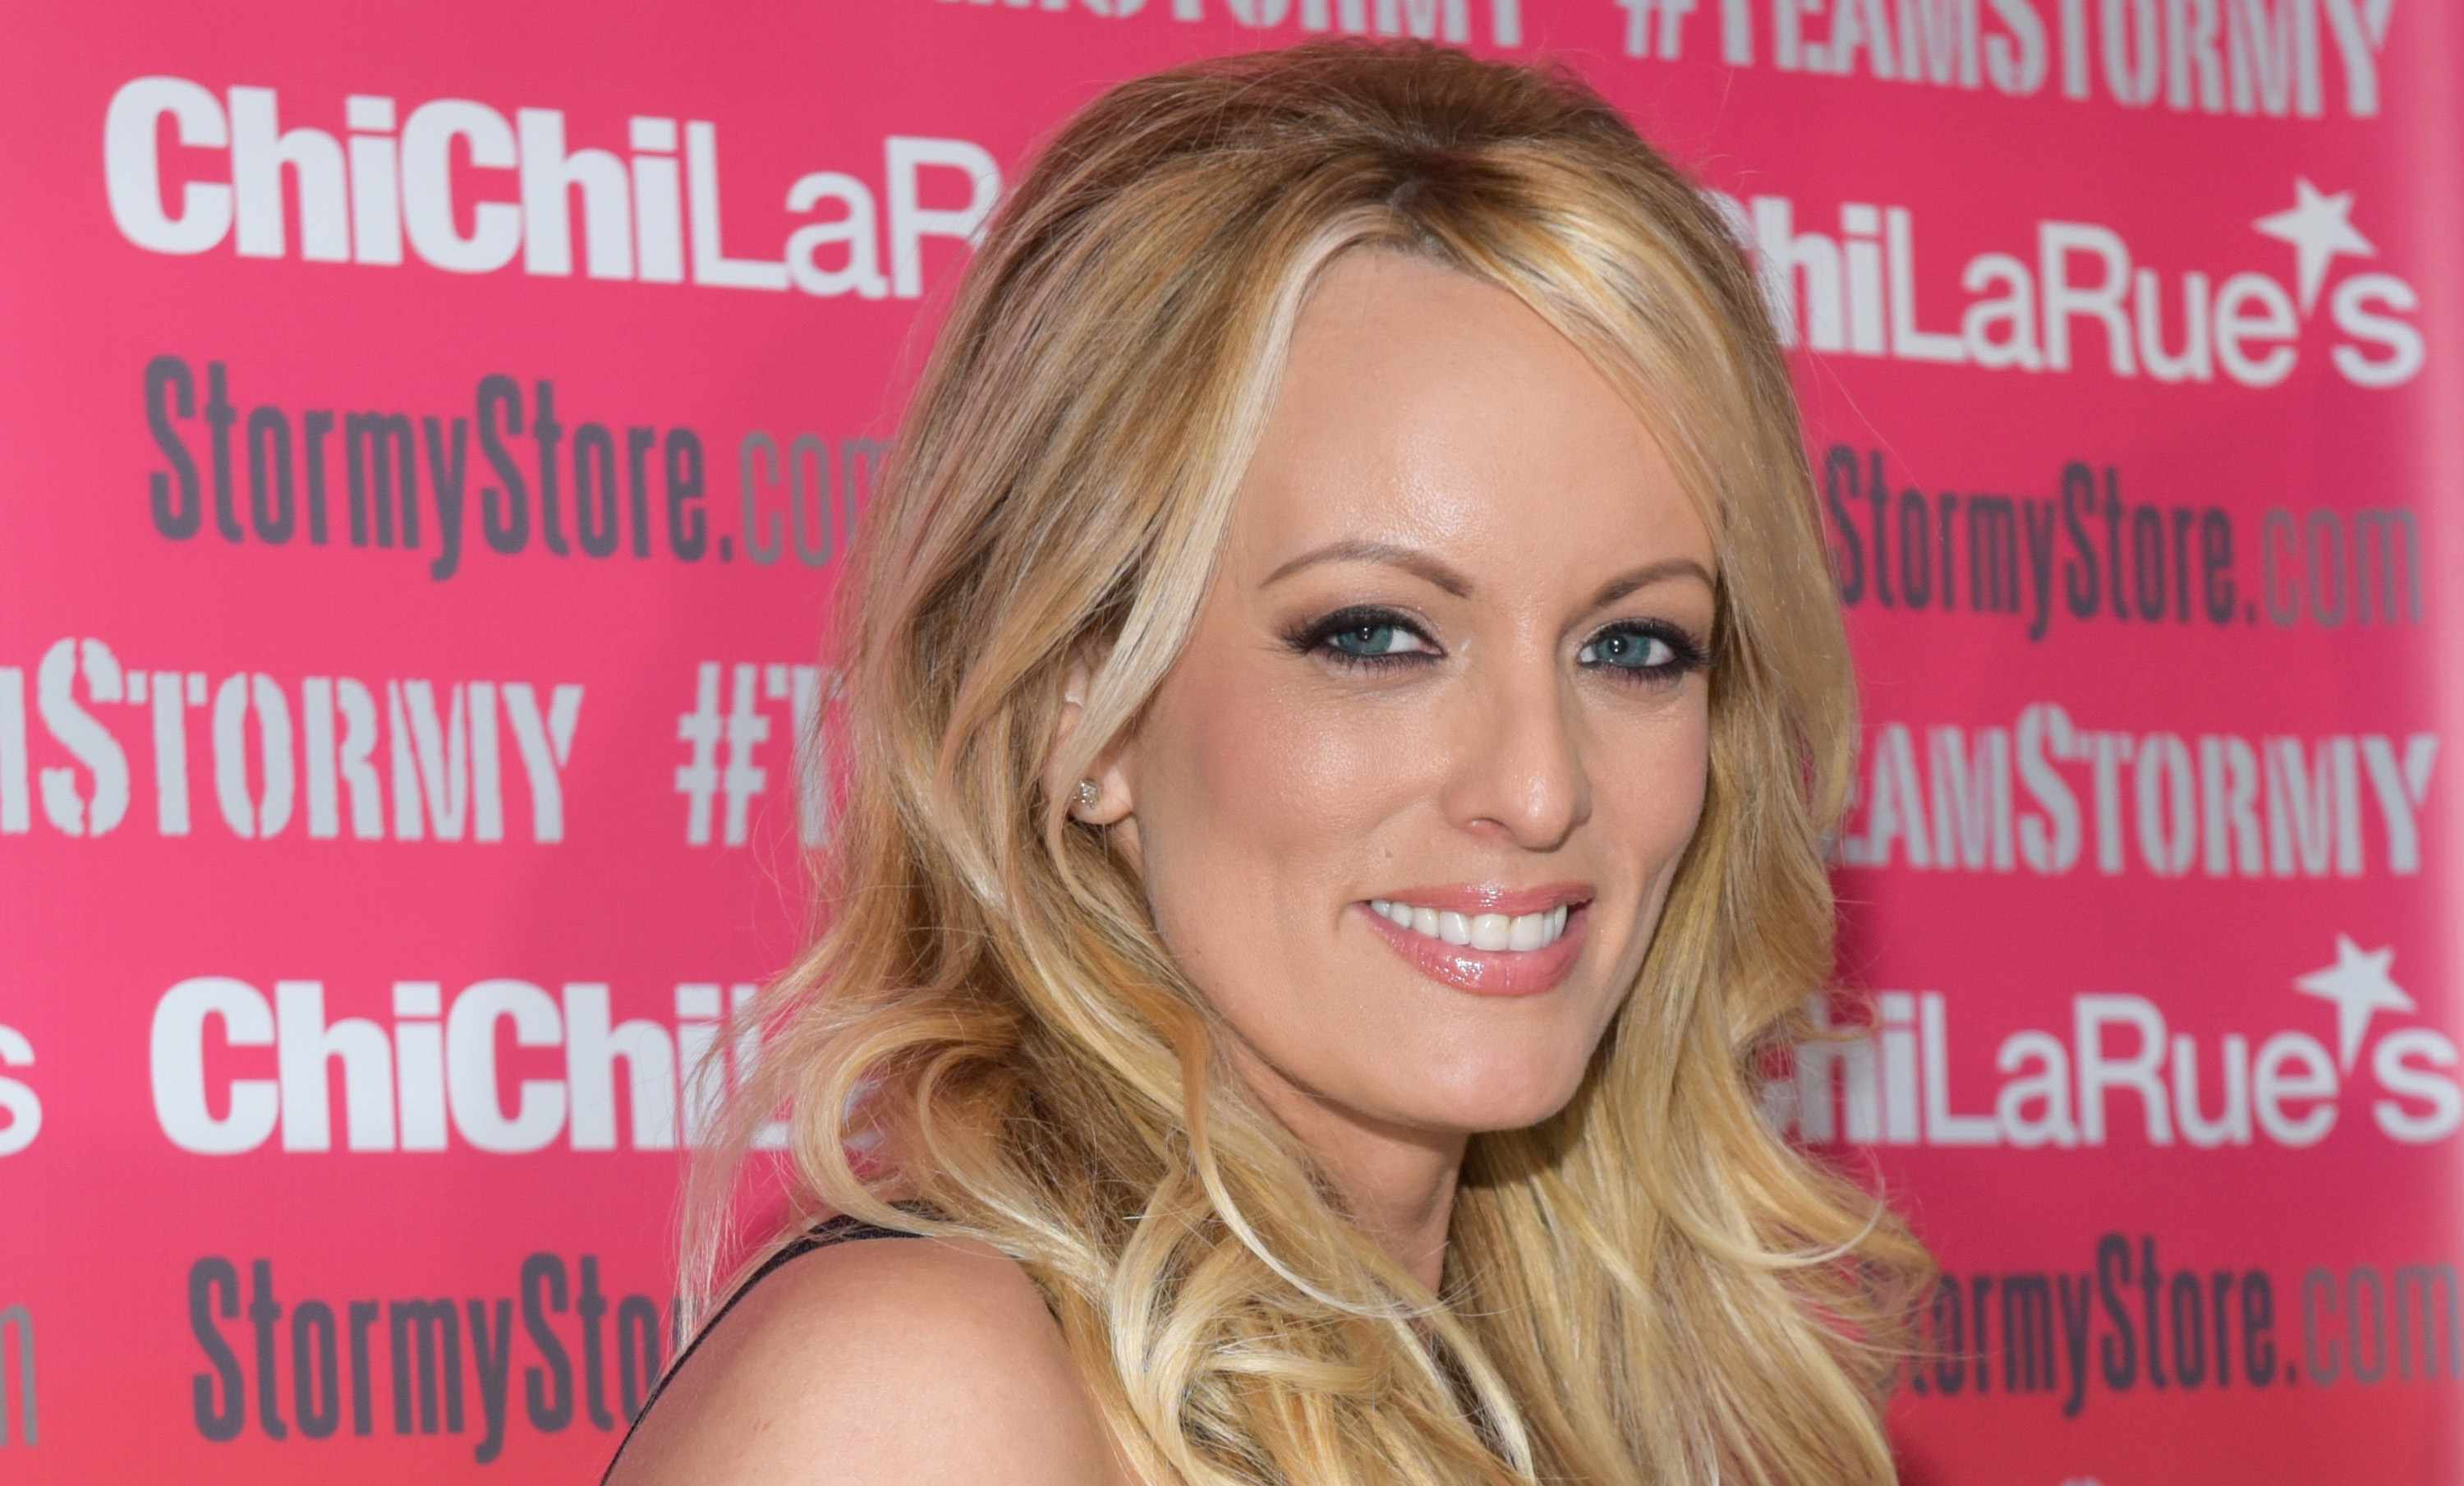 Celebrity Big Brother - Stormy Daniels